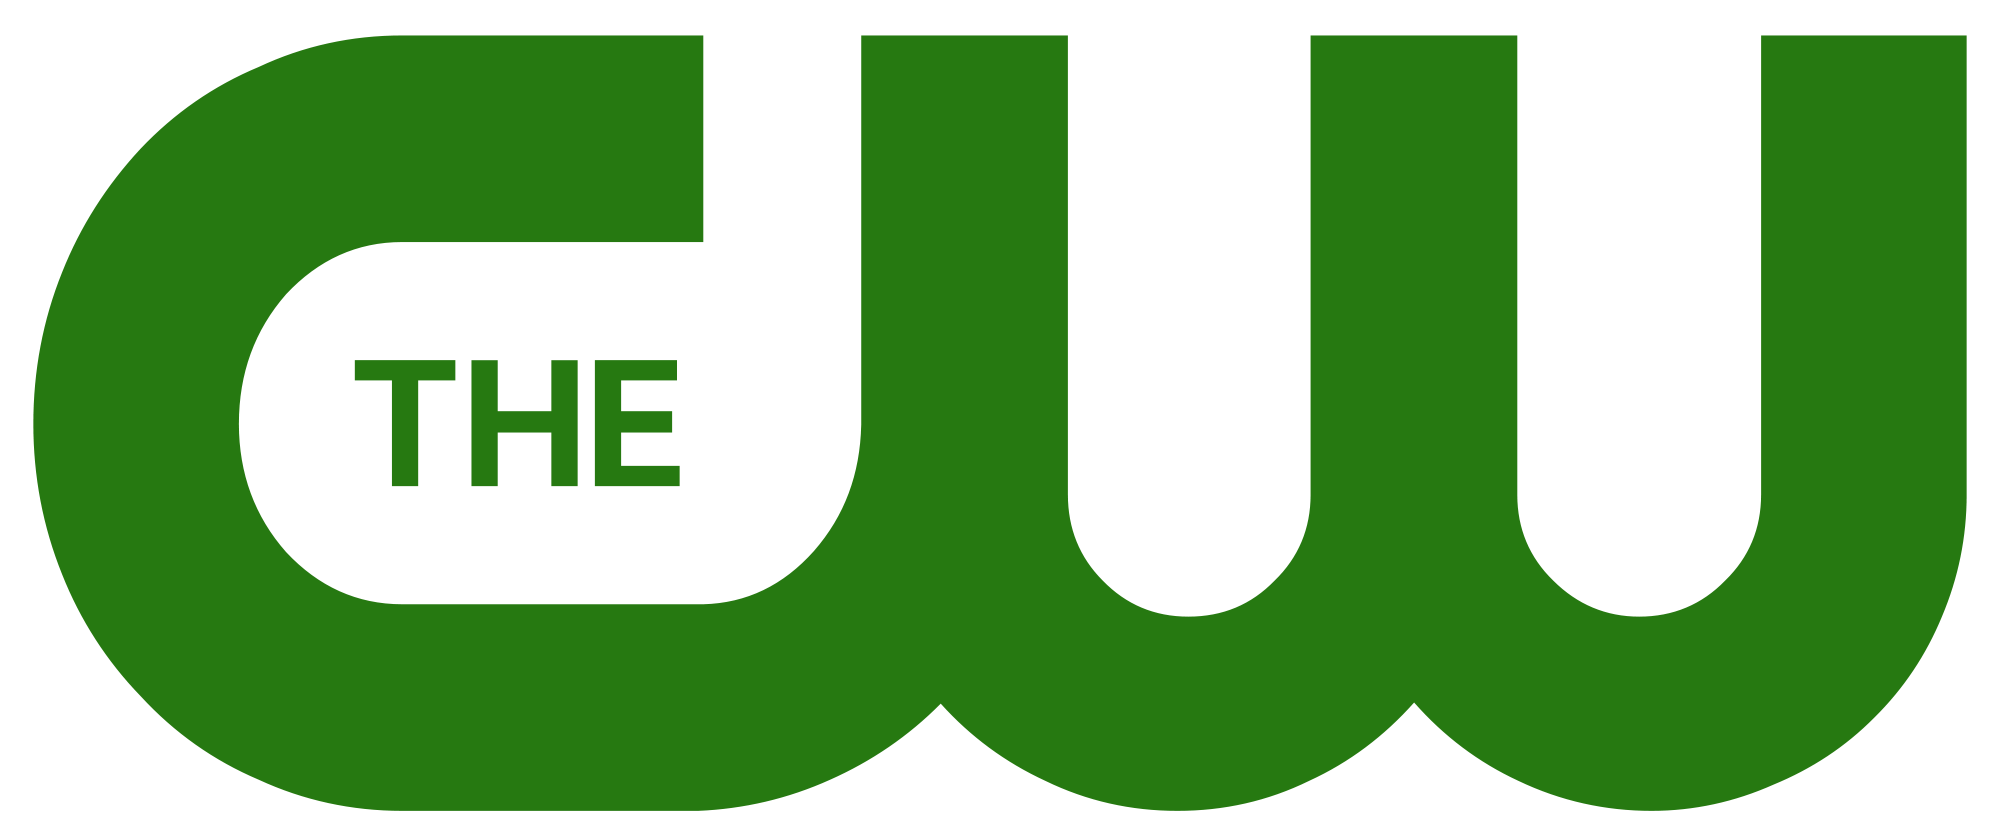 The CW Wikis